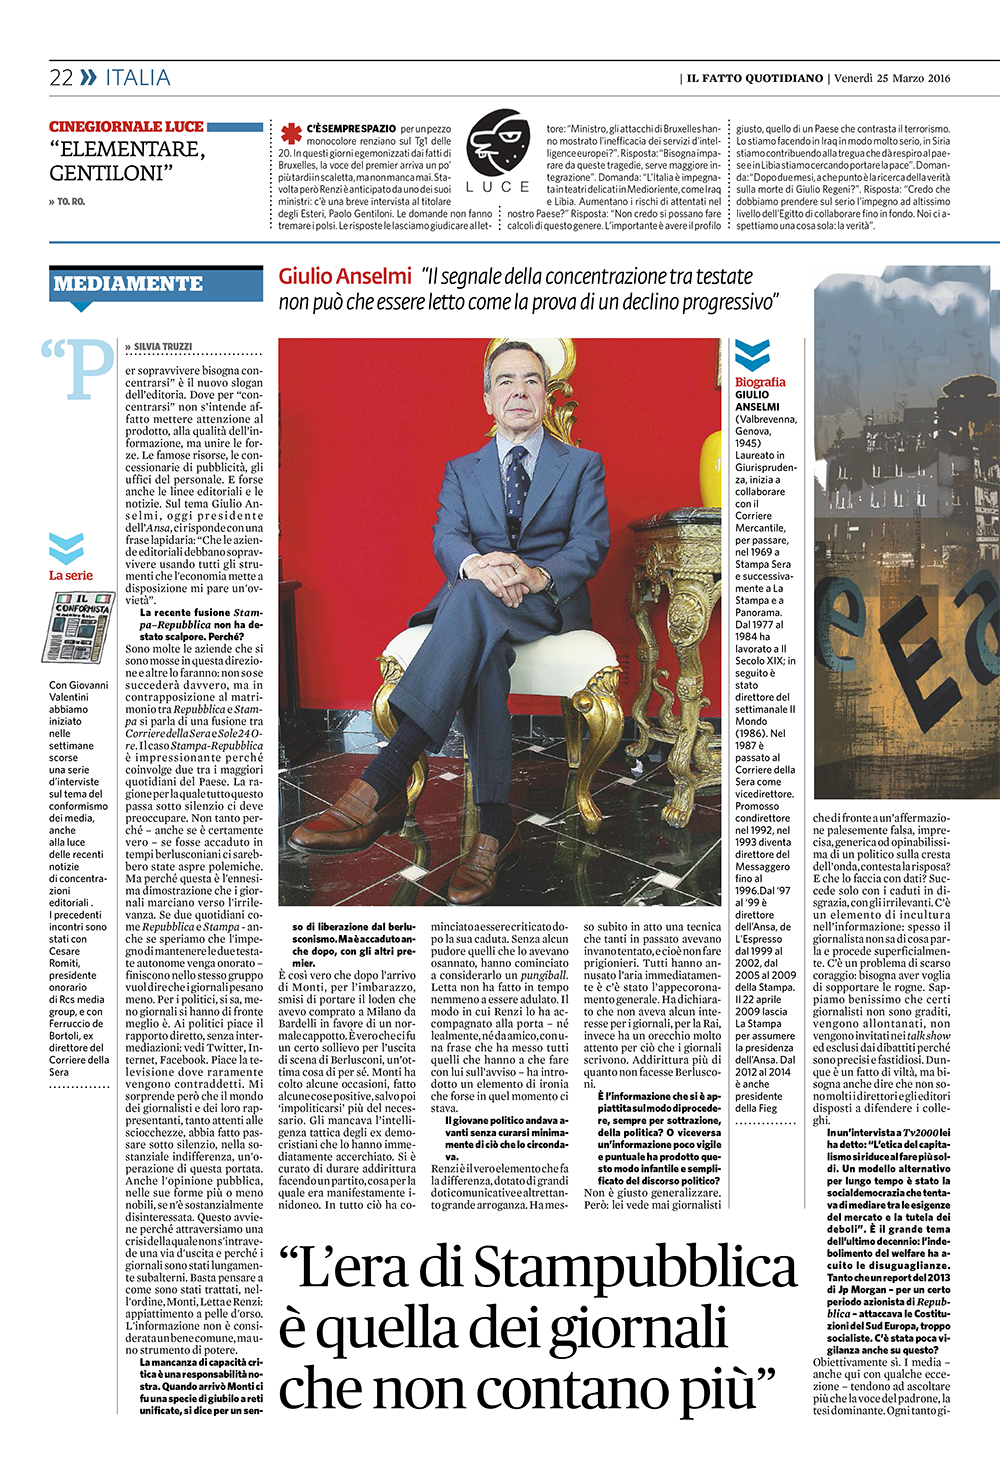 IL_FATTO_QUOTIDIANO_25-03-2016-1